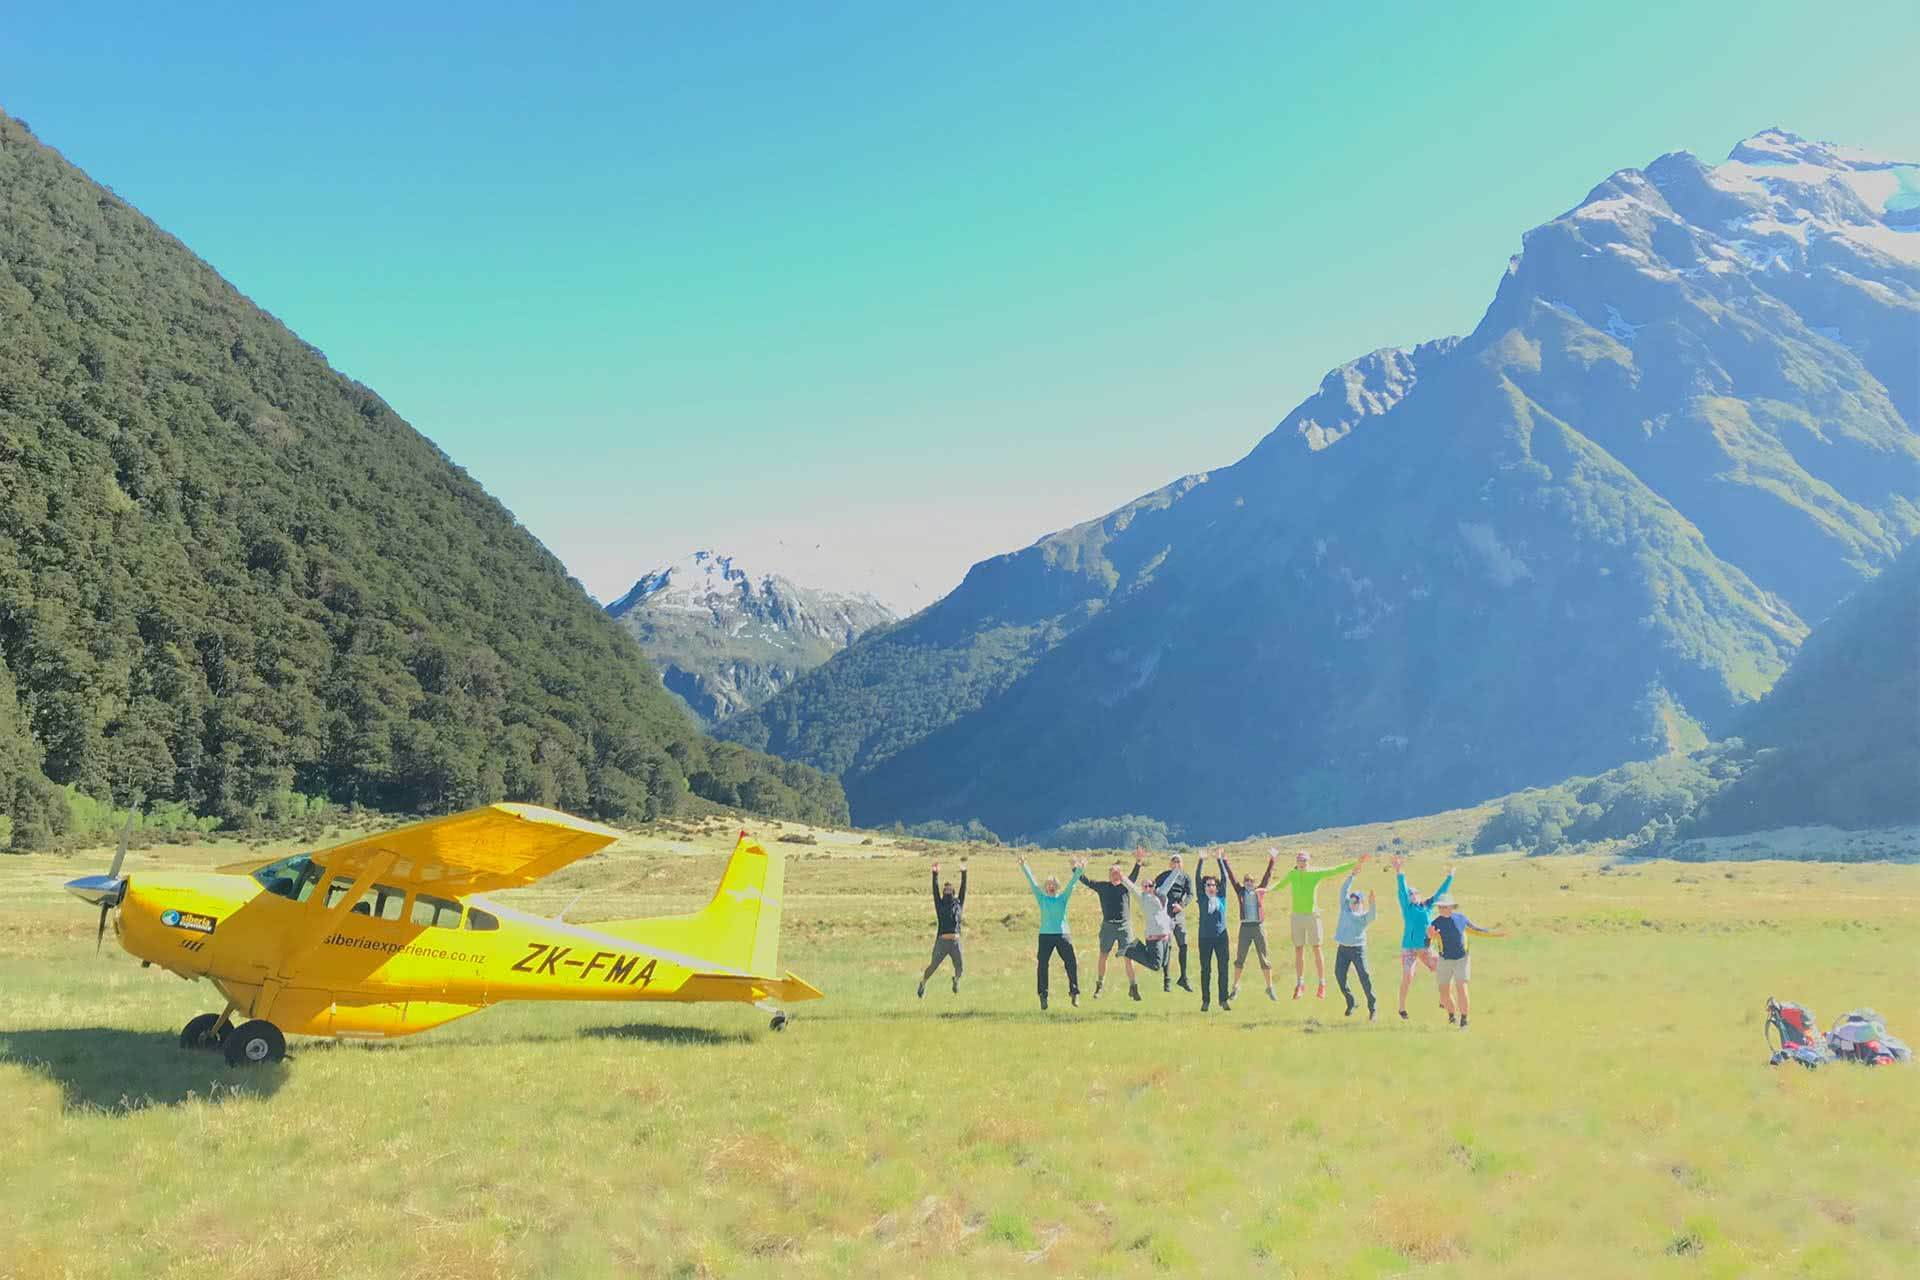 Active Adventures, Essence of the South Island 'Tui' Trip, Active Adventures, Group, Adventure Tours, Scenic Flight